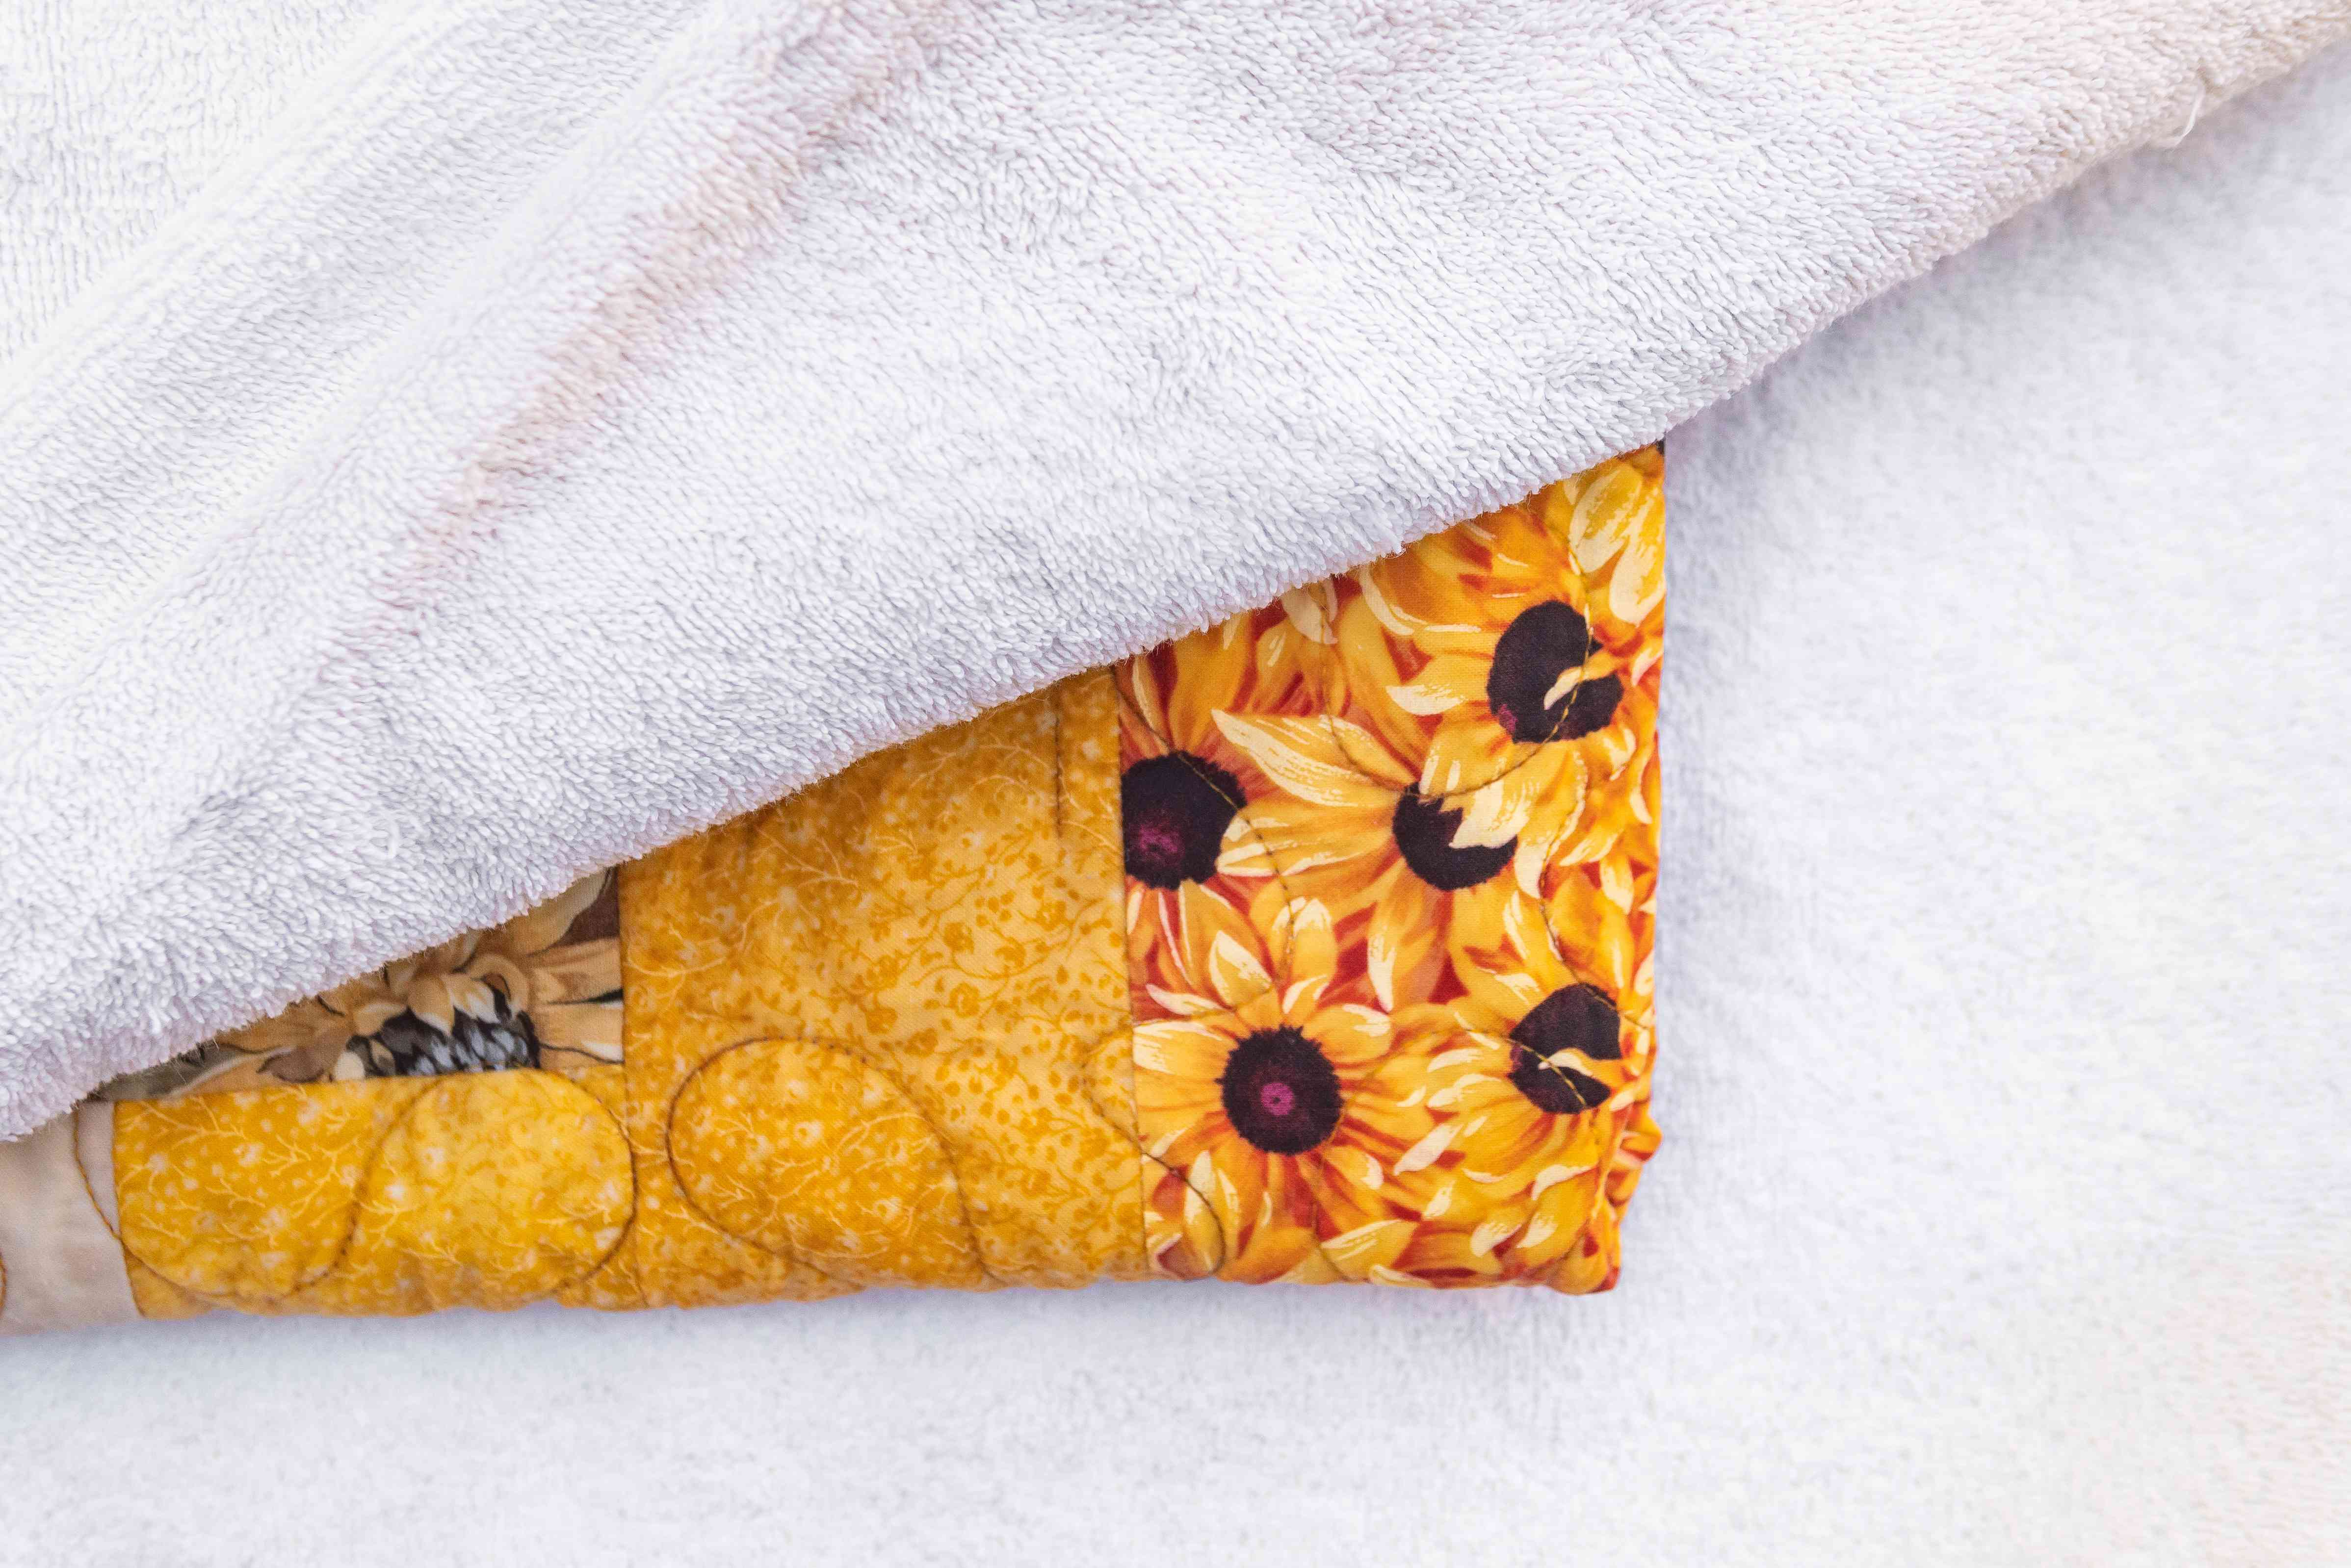 Vintage quilt covered by white towels